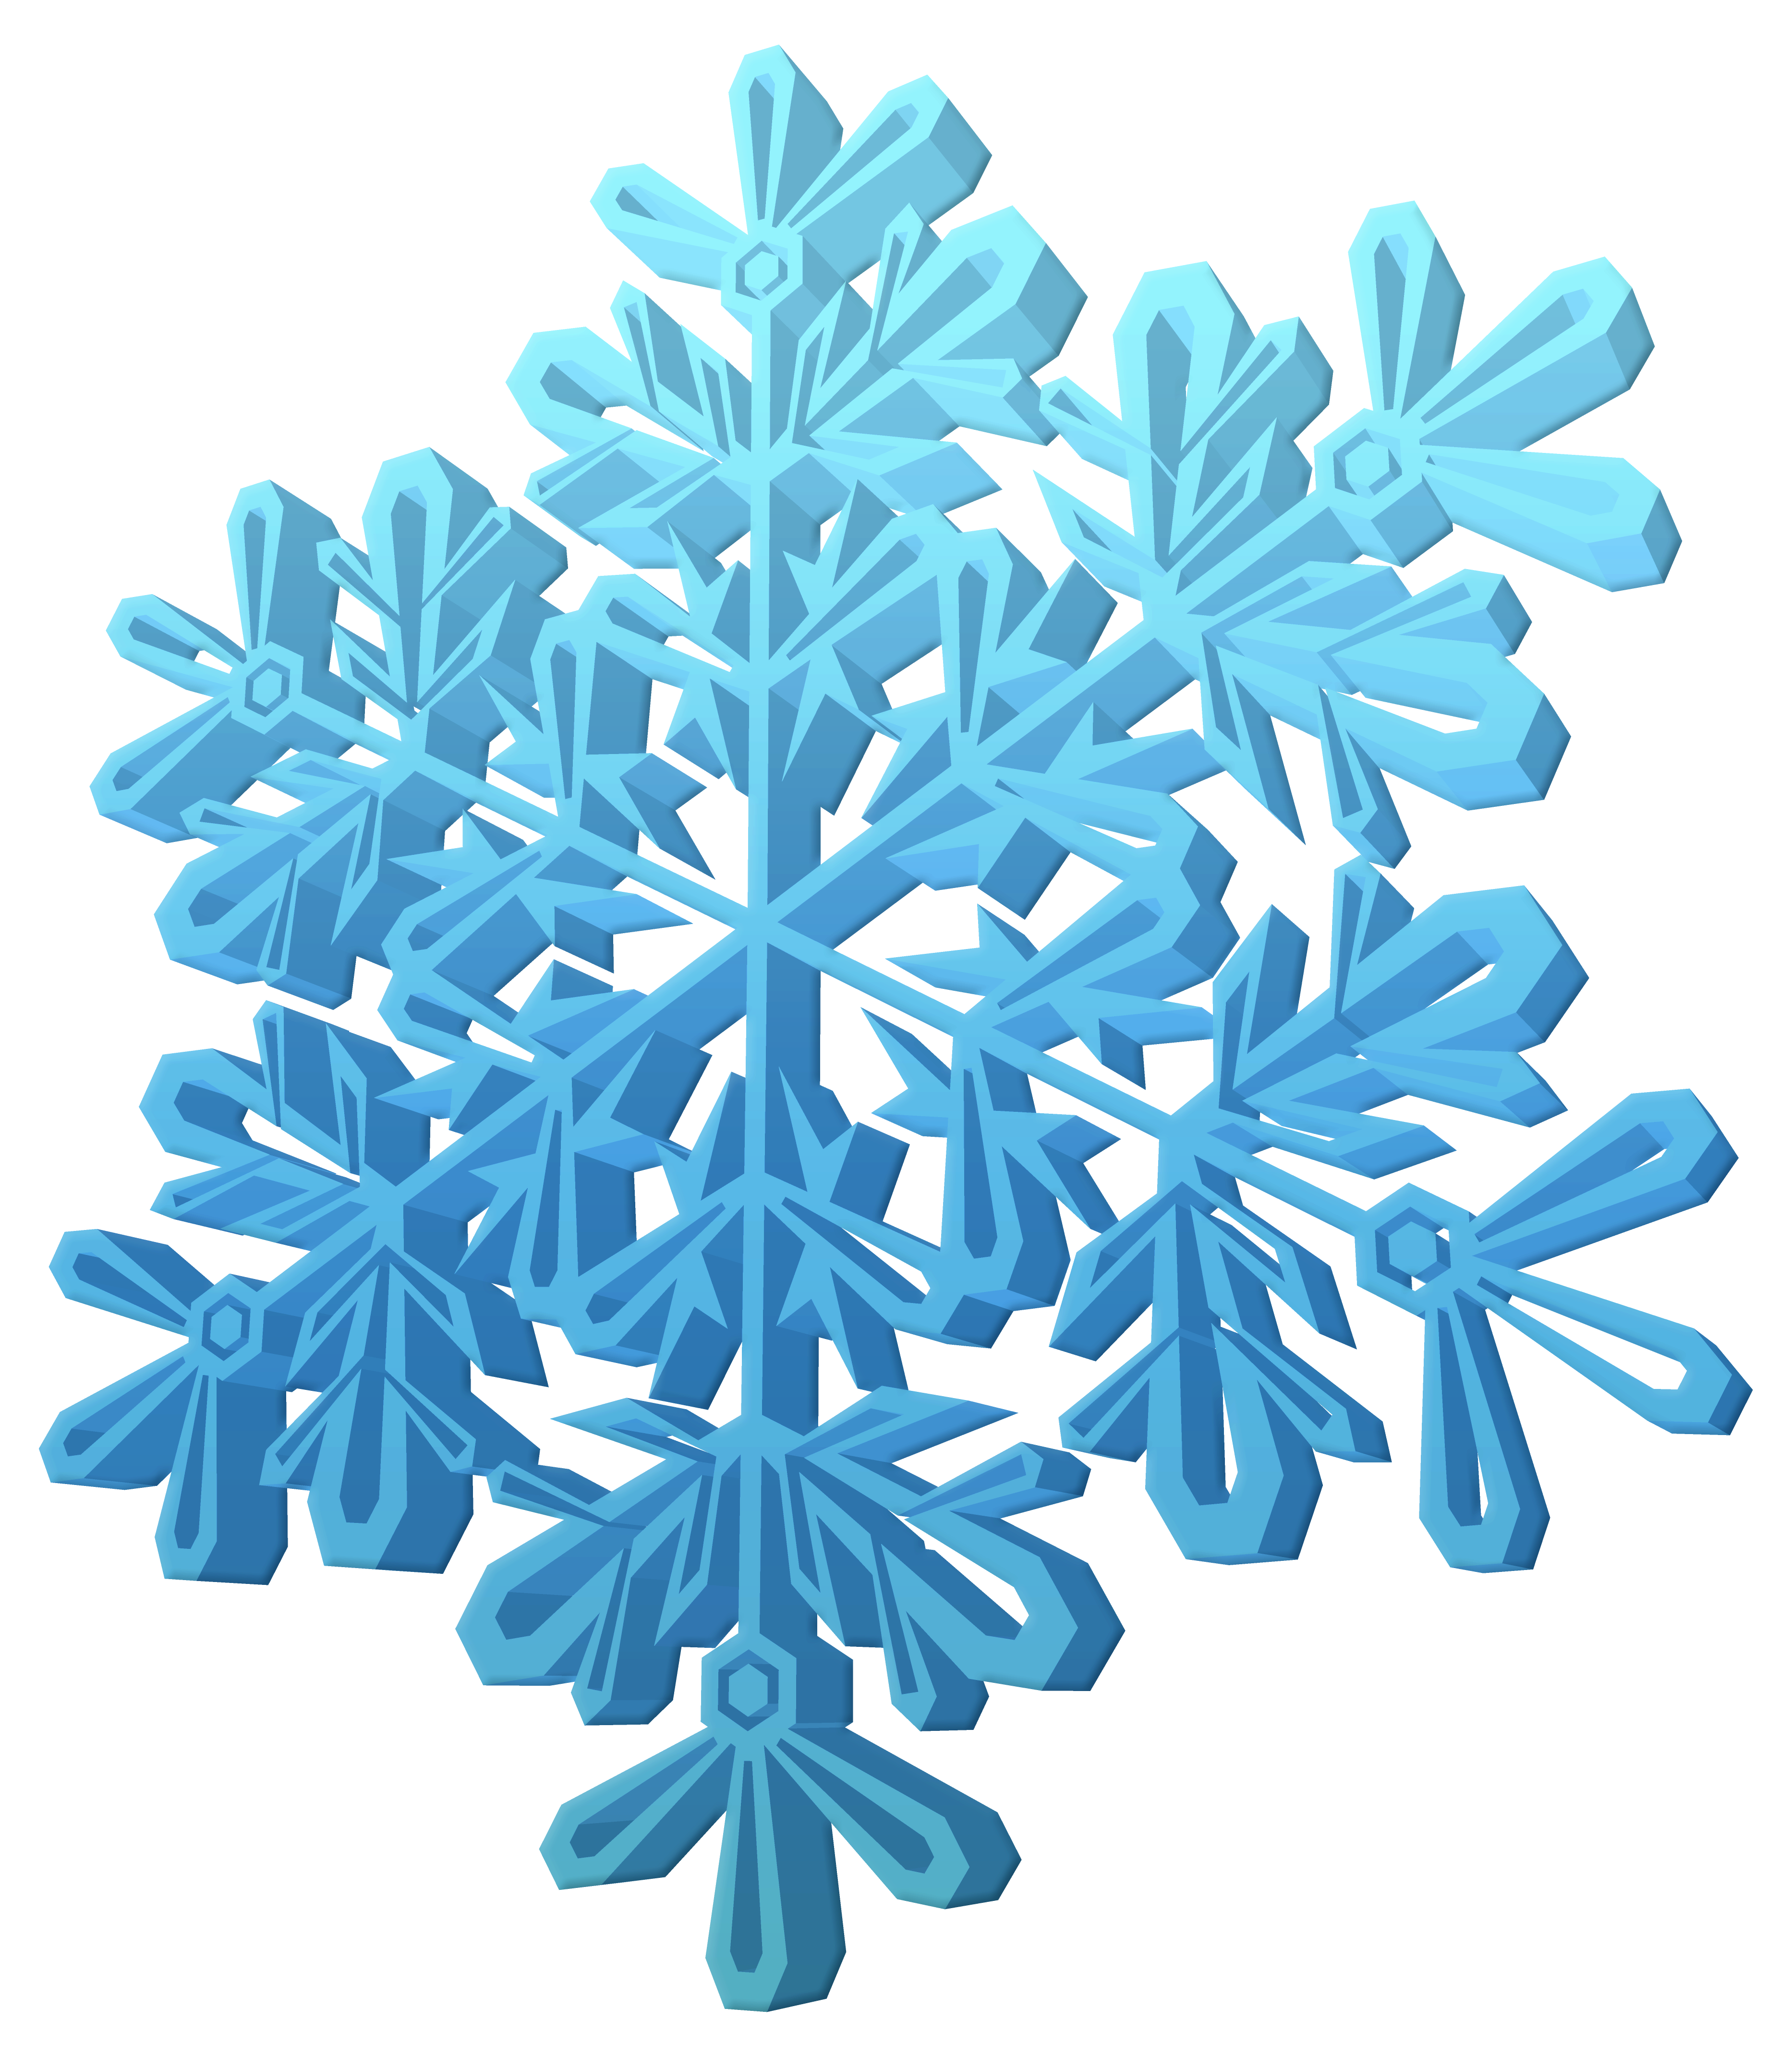 3D Snowflake PNG Clipart Image | Gallery Yopriceville - High ... image freeuse stock